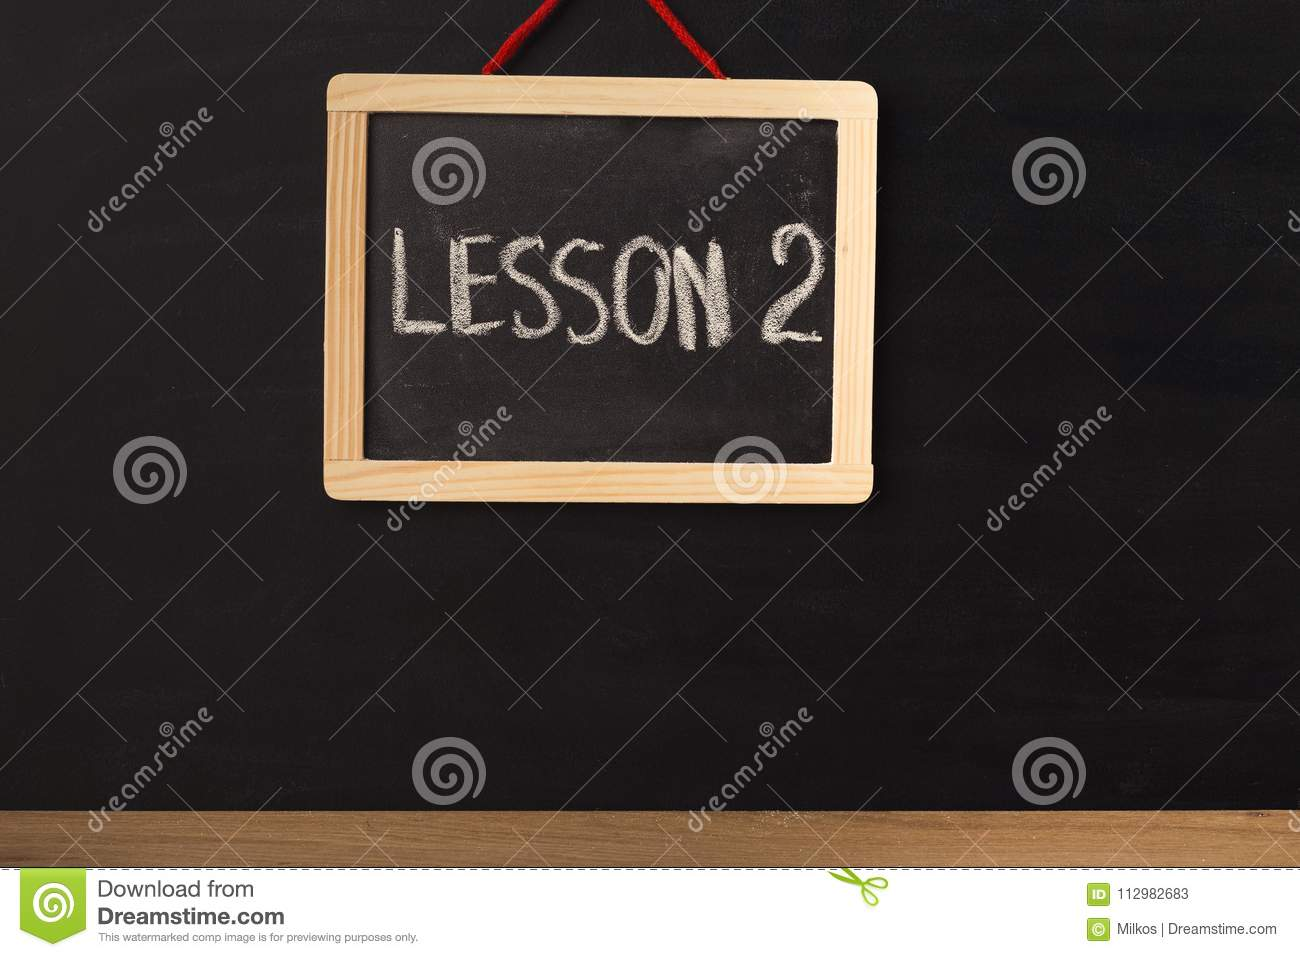 Word lesson 2 written on miniature chalkboard